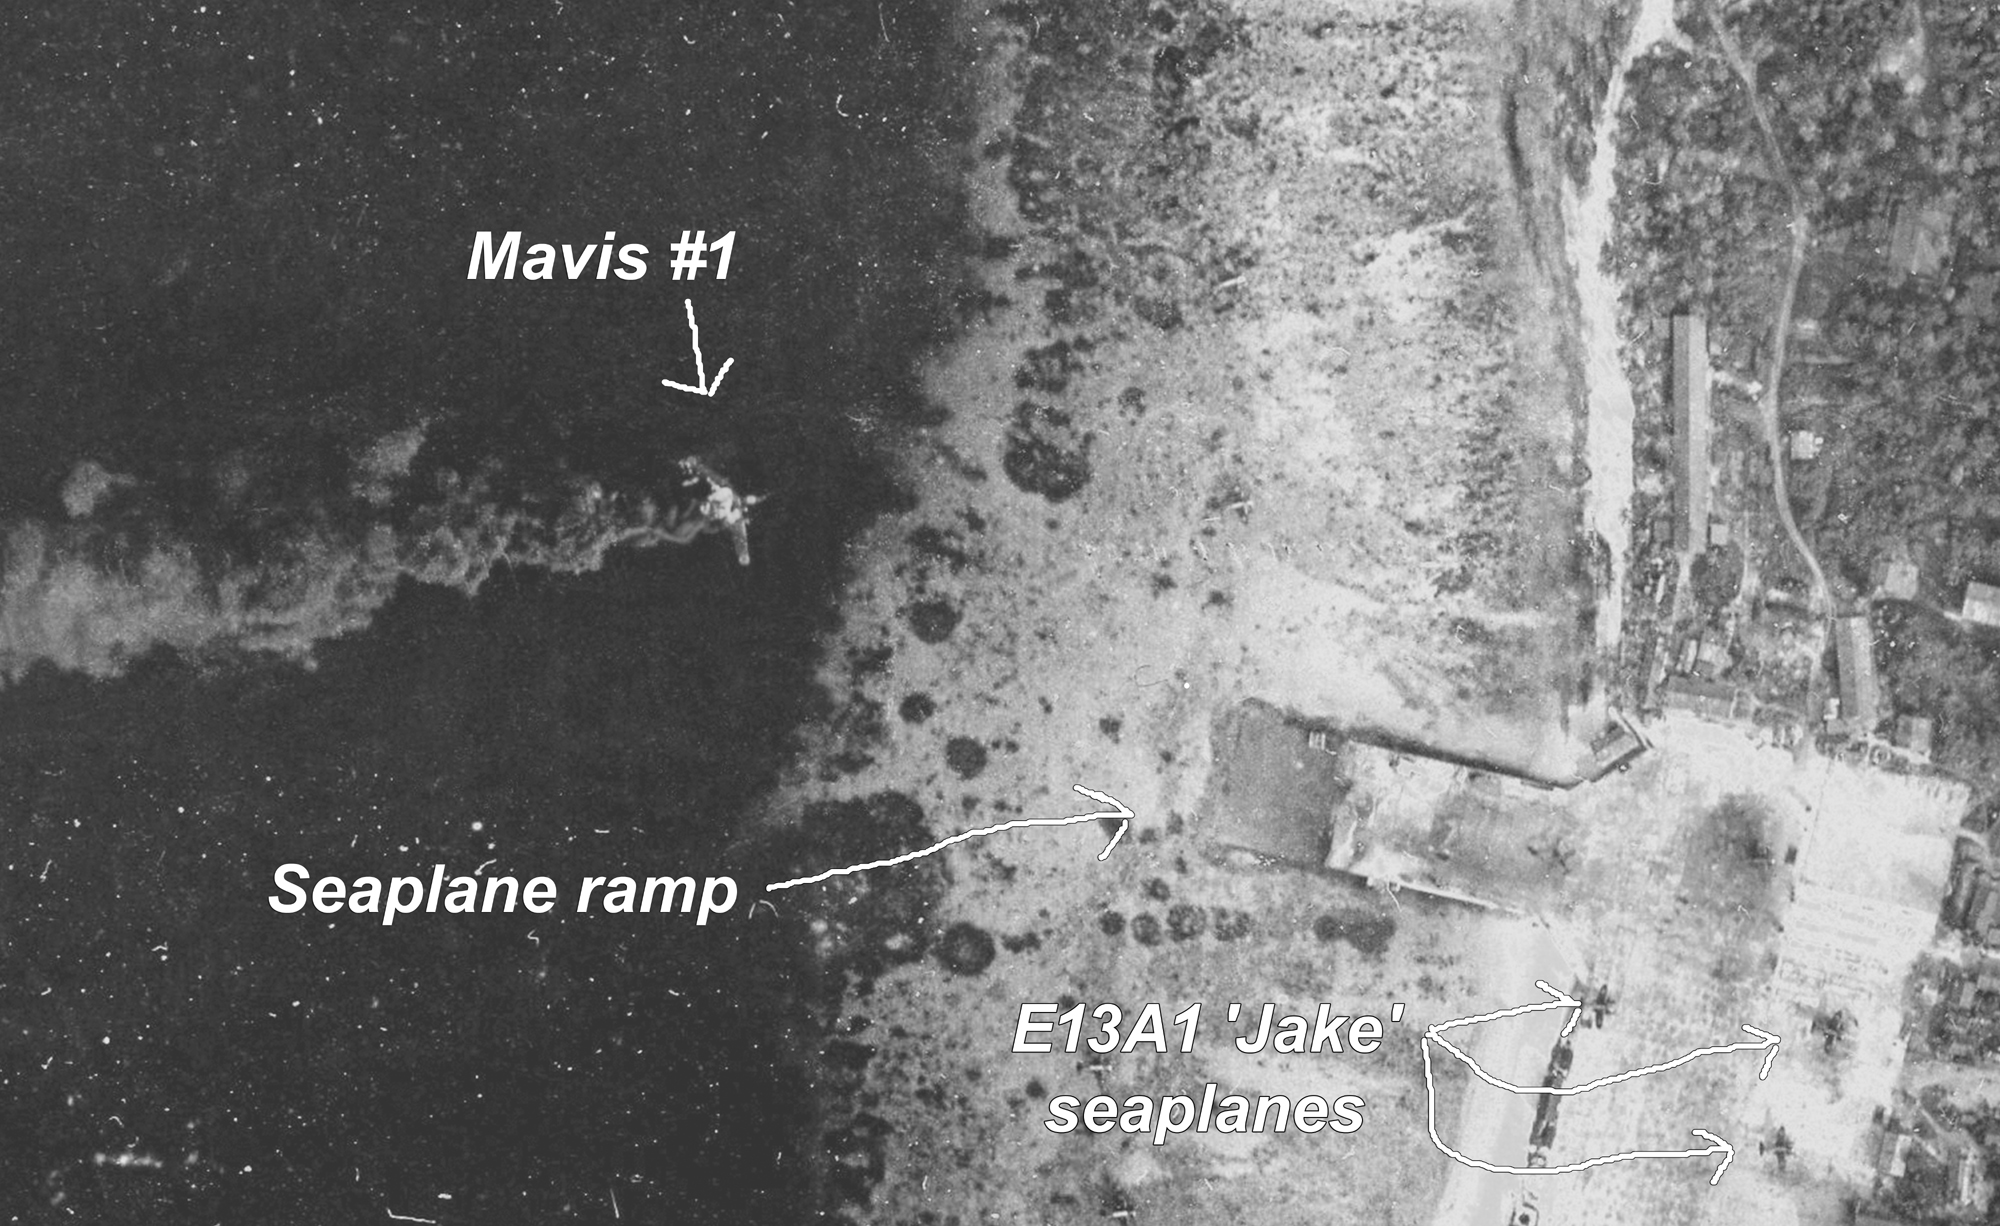 There is one historical photo in this group that shows 'Mavis #1' burning on the water on December 4th, 1943. That photo comes from my private collection- I obtained it when I hired a researcher at the US National Archives to find photos from the Dec. 4, 1943 attack on Kwajalein Atoll. I was completely thrilled when that photo came to me with the other results of the photo search. This article is the first time I've included it in anything I've written about the two Mavis wrecks. So it's a rare one for sure, and I'm happy to be able to include it for the first time with this article.